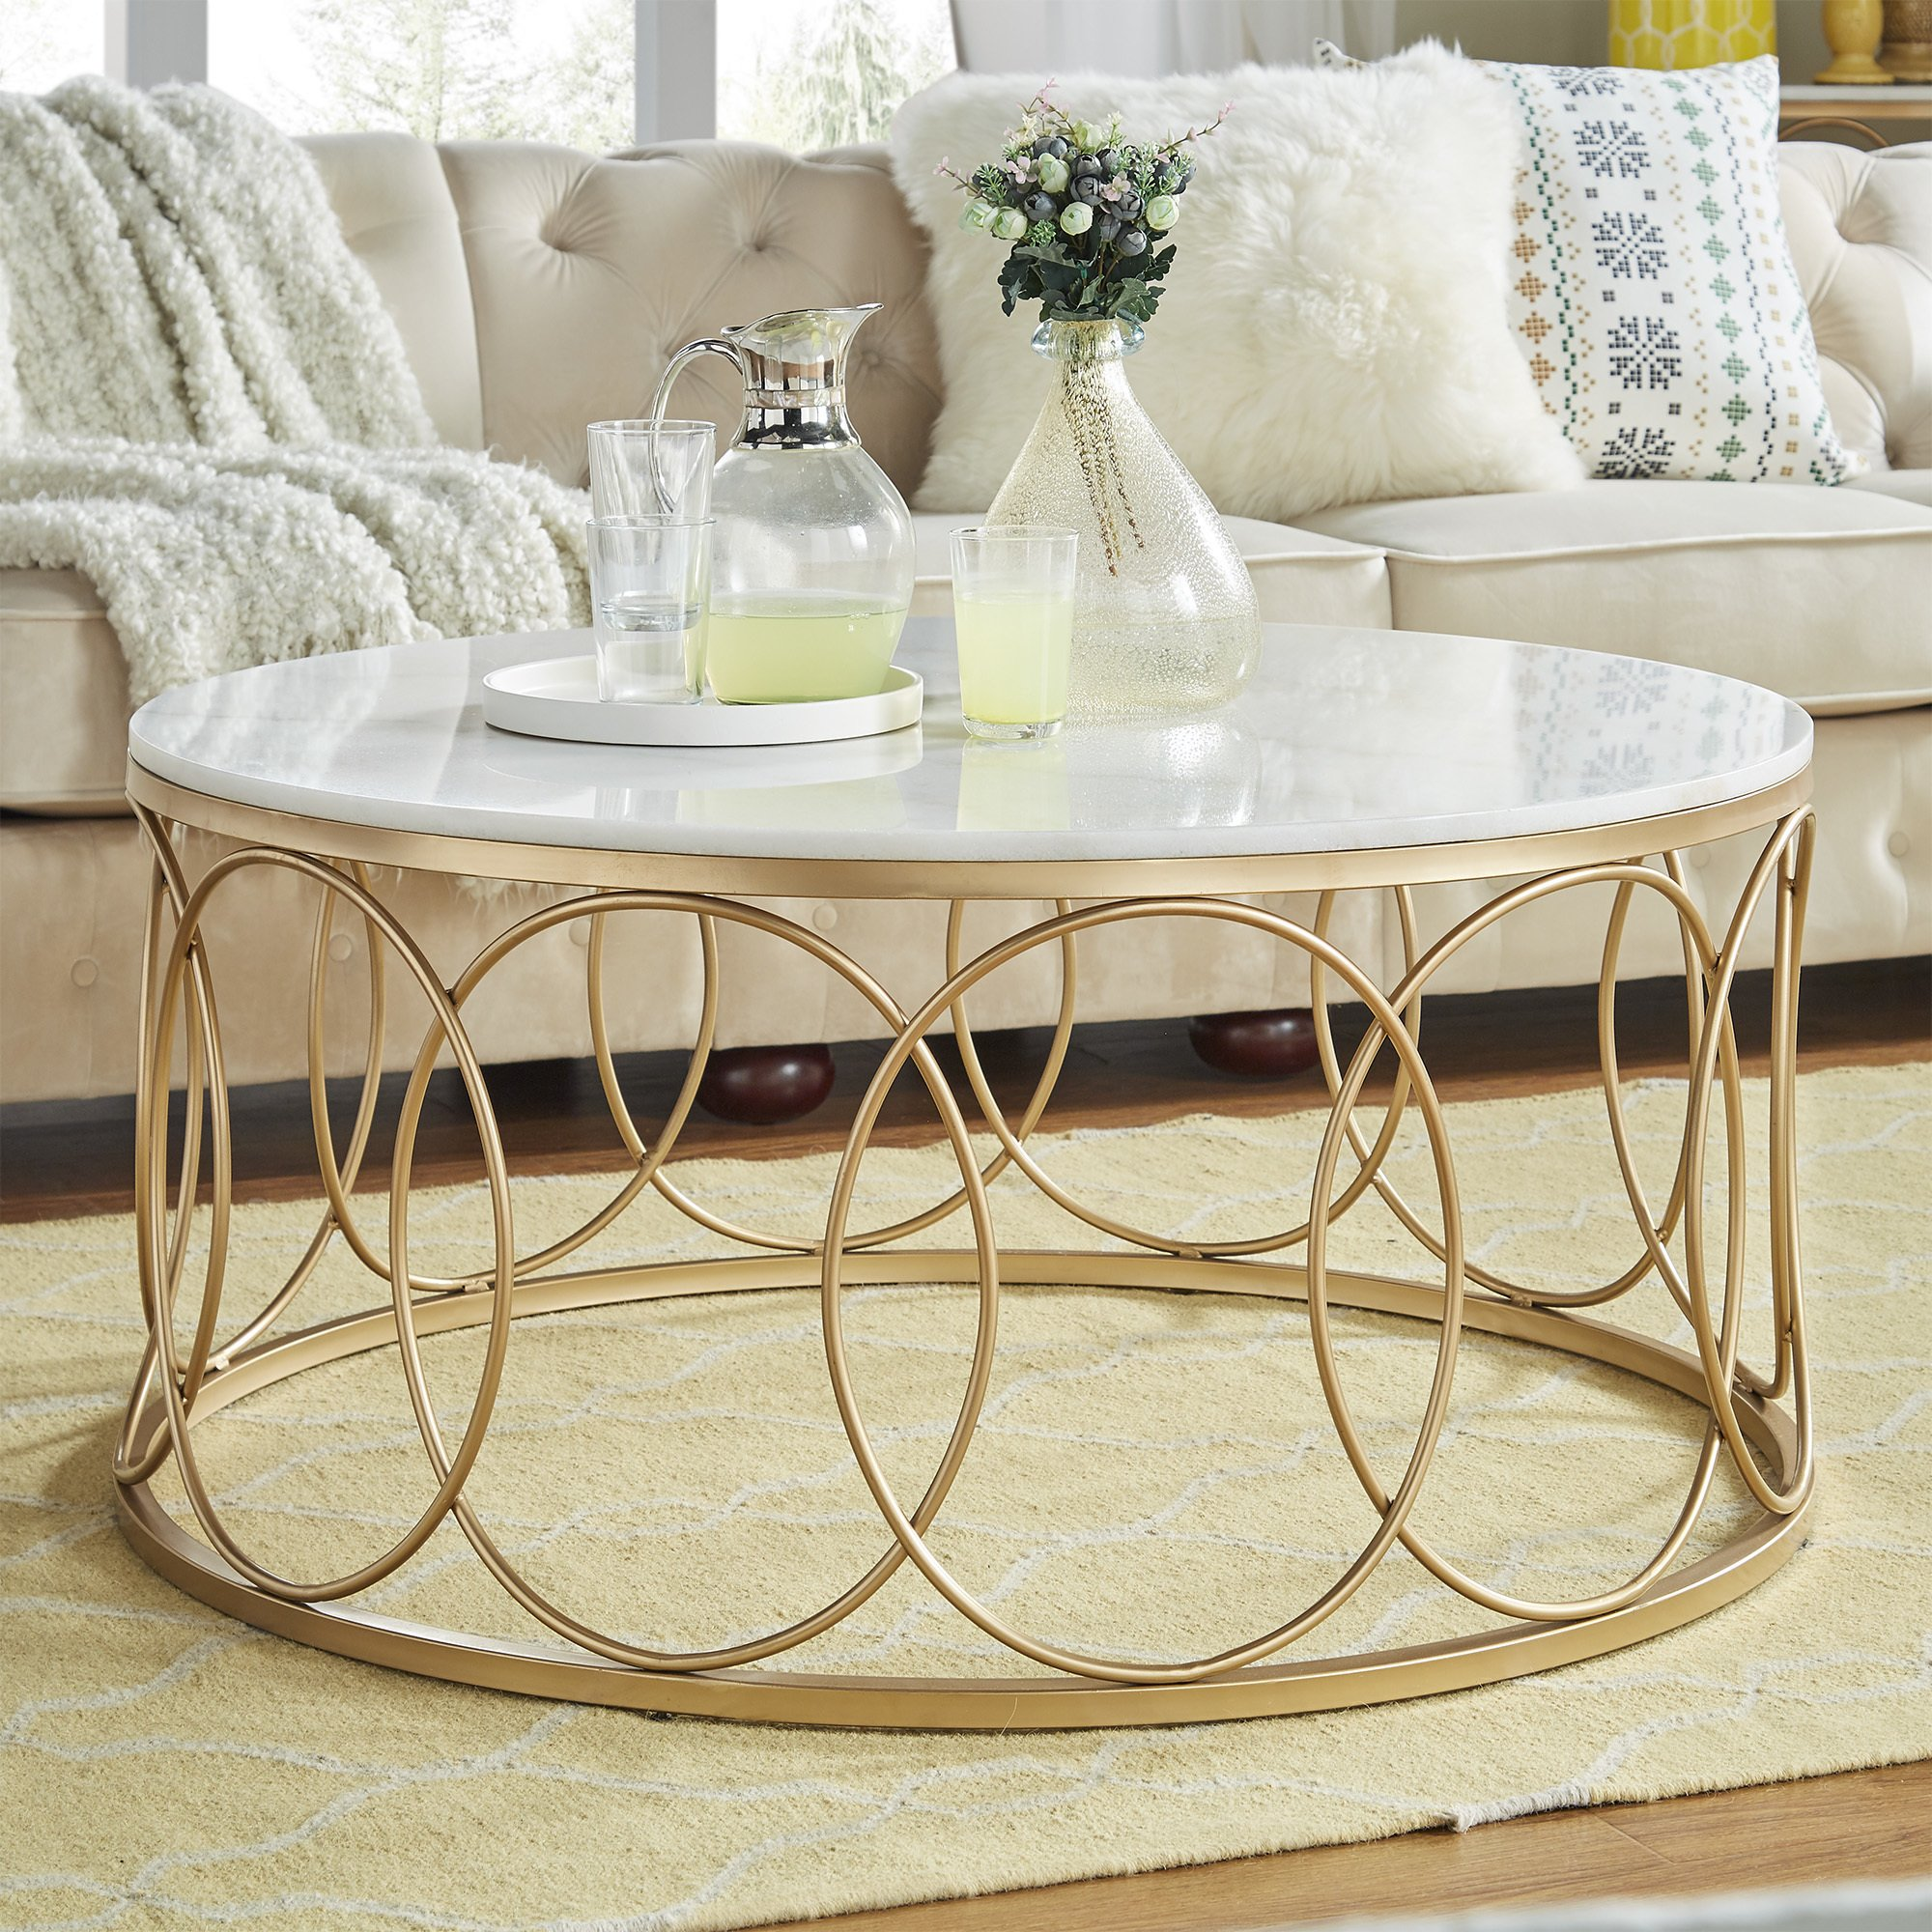 lynn round gold accent tables with marble tops inspire bold top table free shipping today black and glass coffee hampton bay furniture covers storage cabinets chests side light